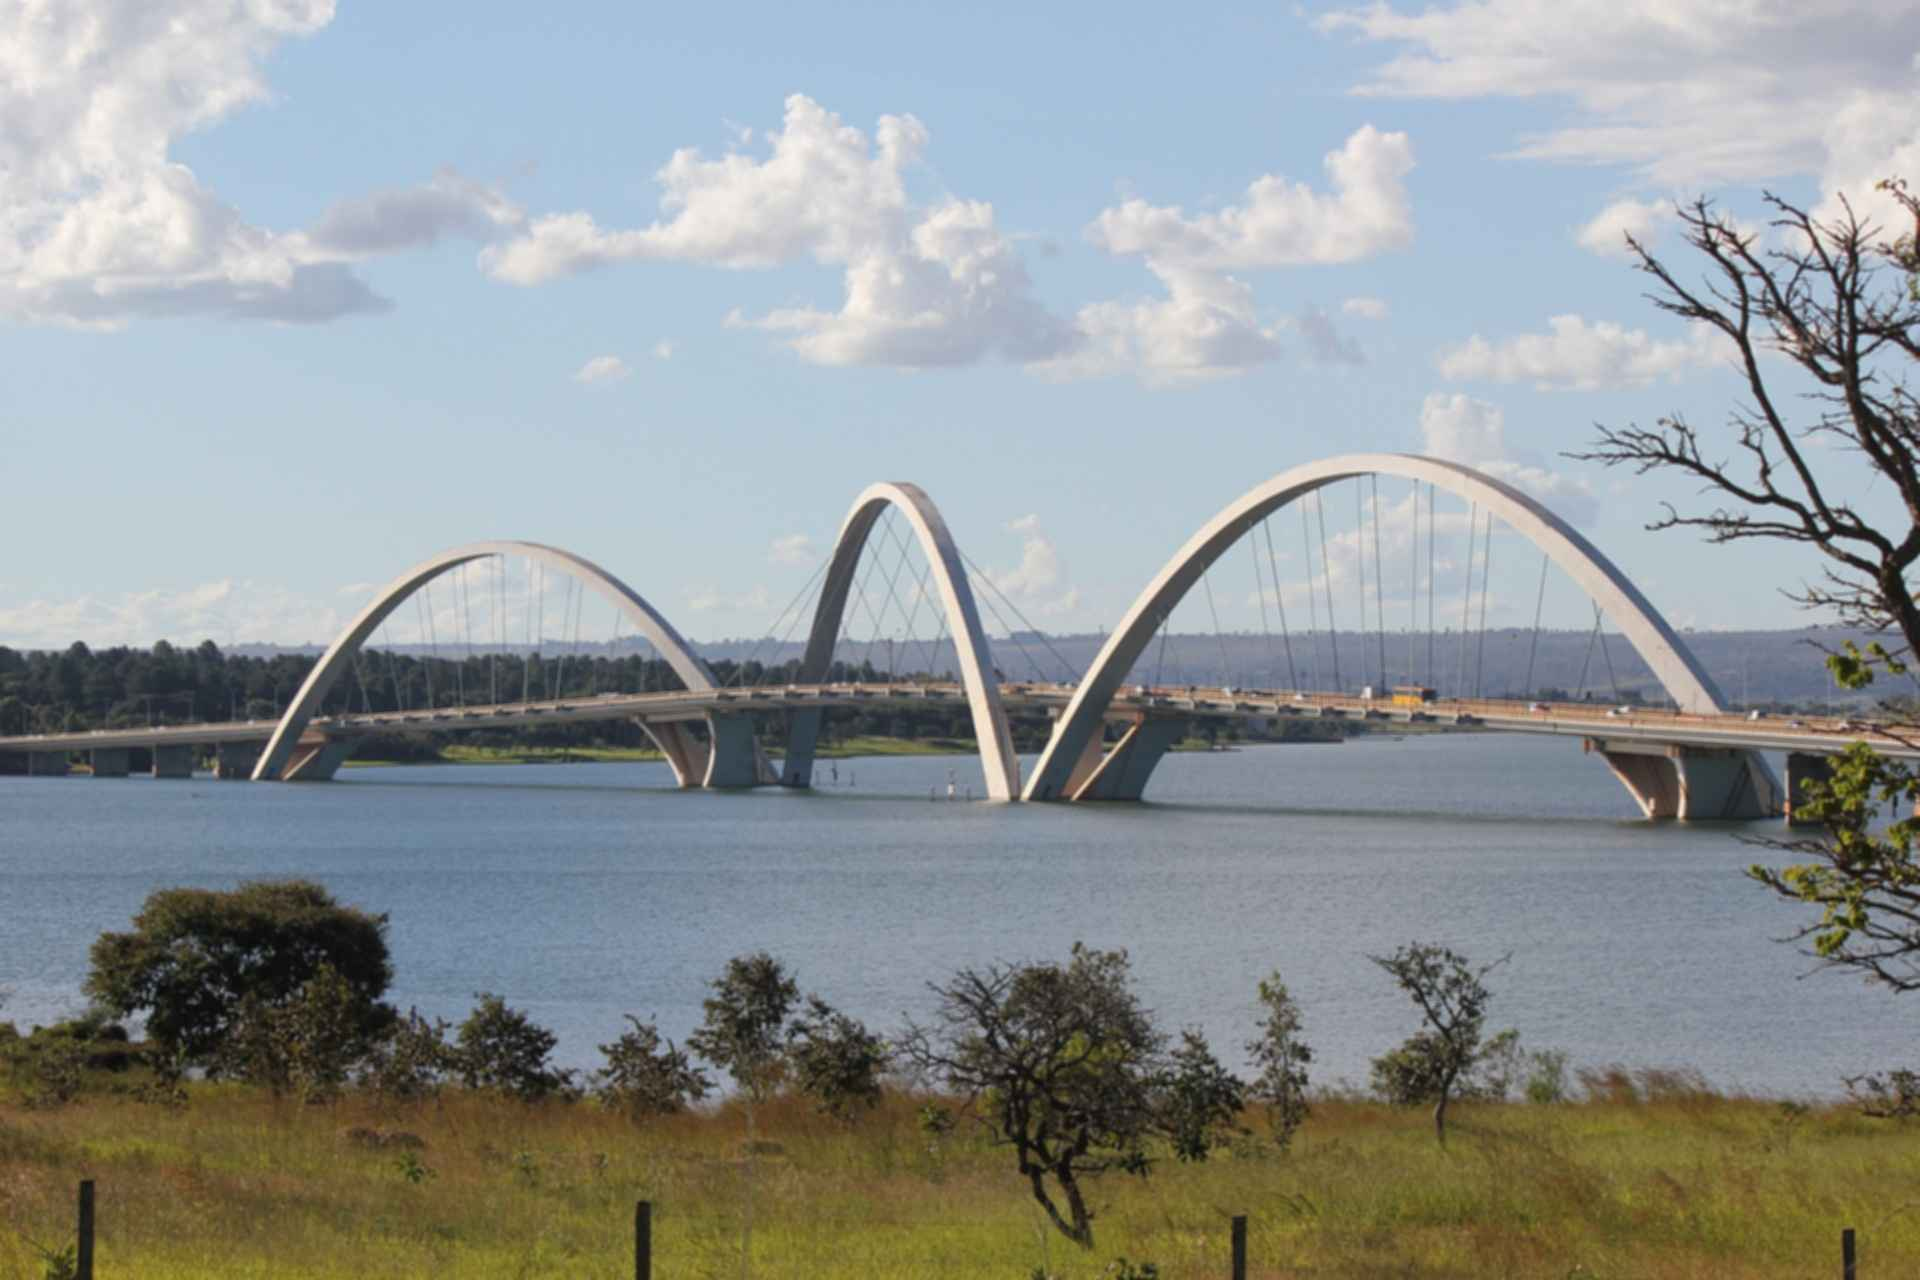 Juscelino Kubitschek Bridge - Arches